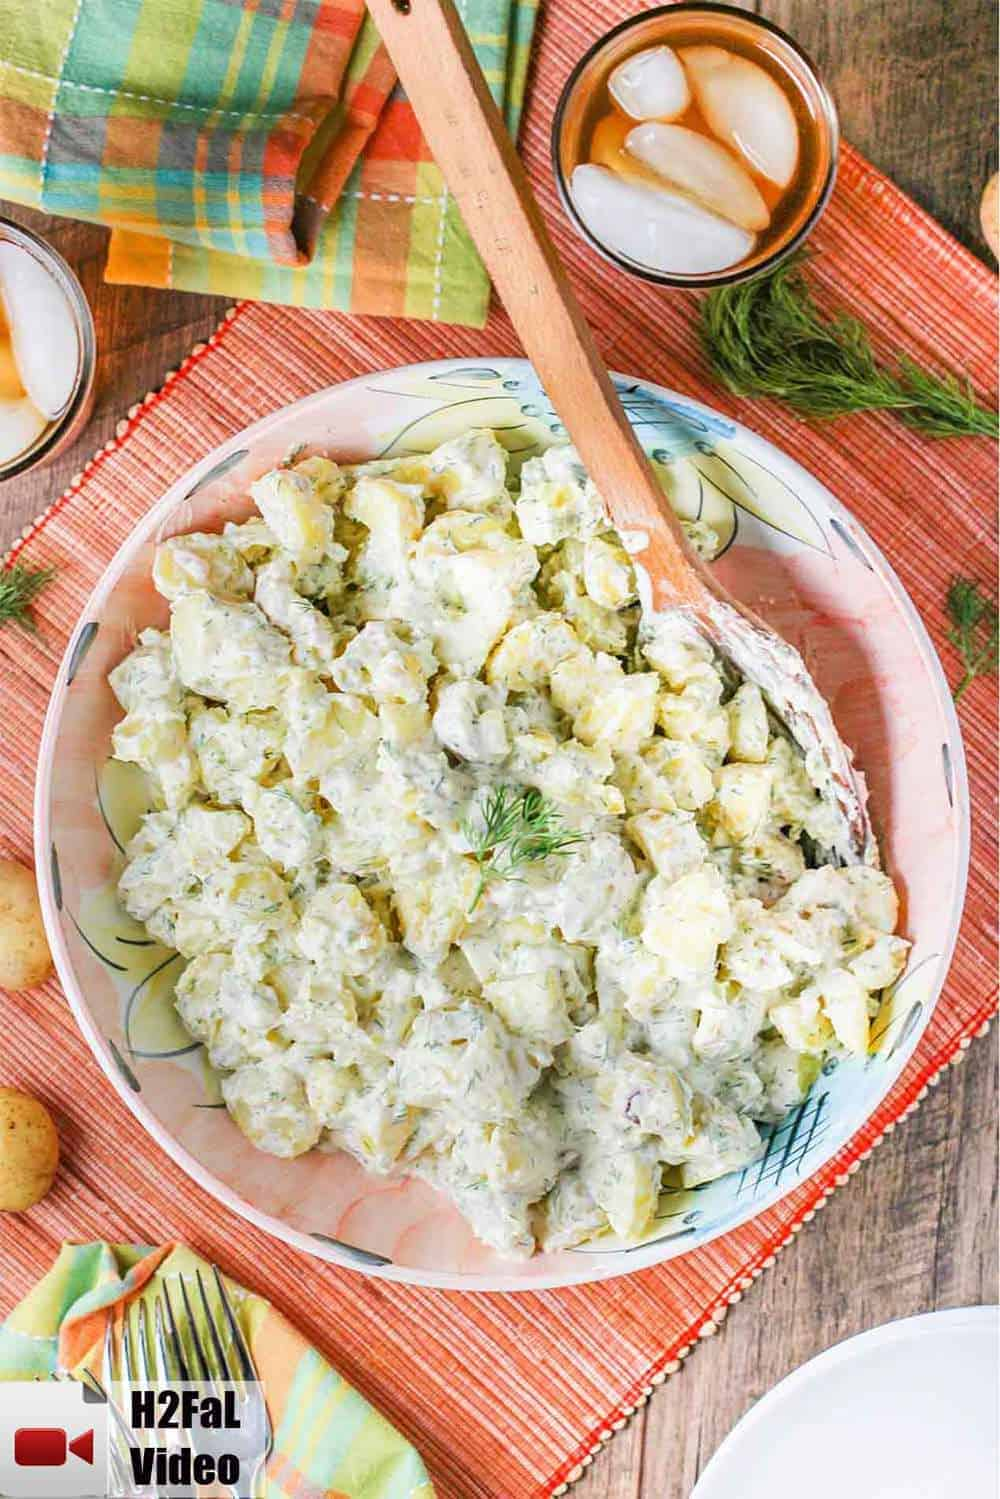 Creamy potato salad in a large pink bowl with a wooden spoon.